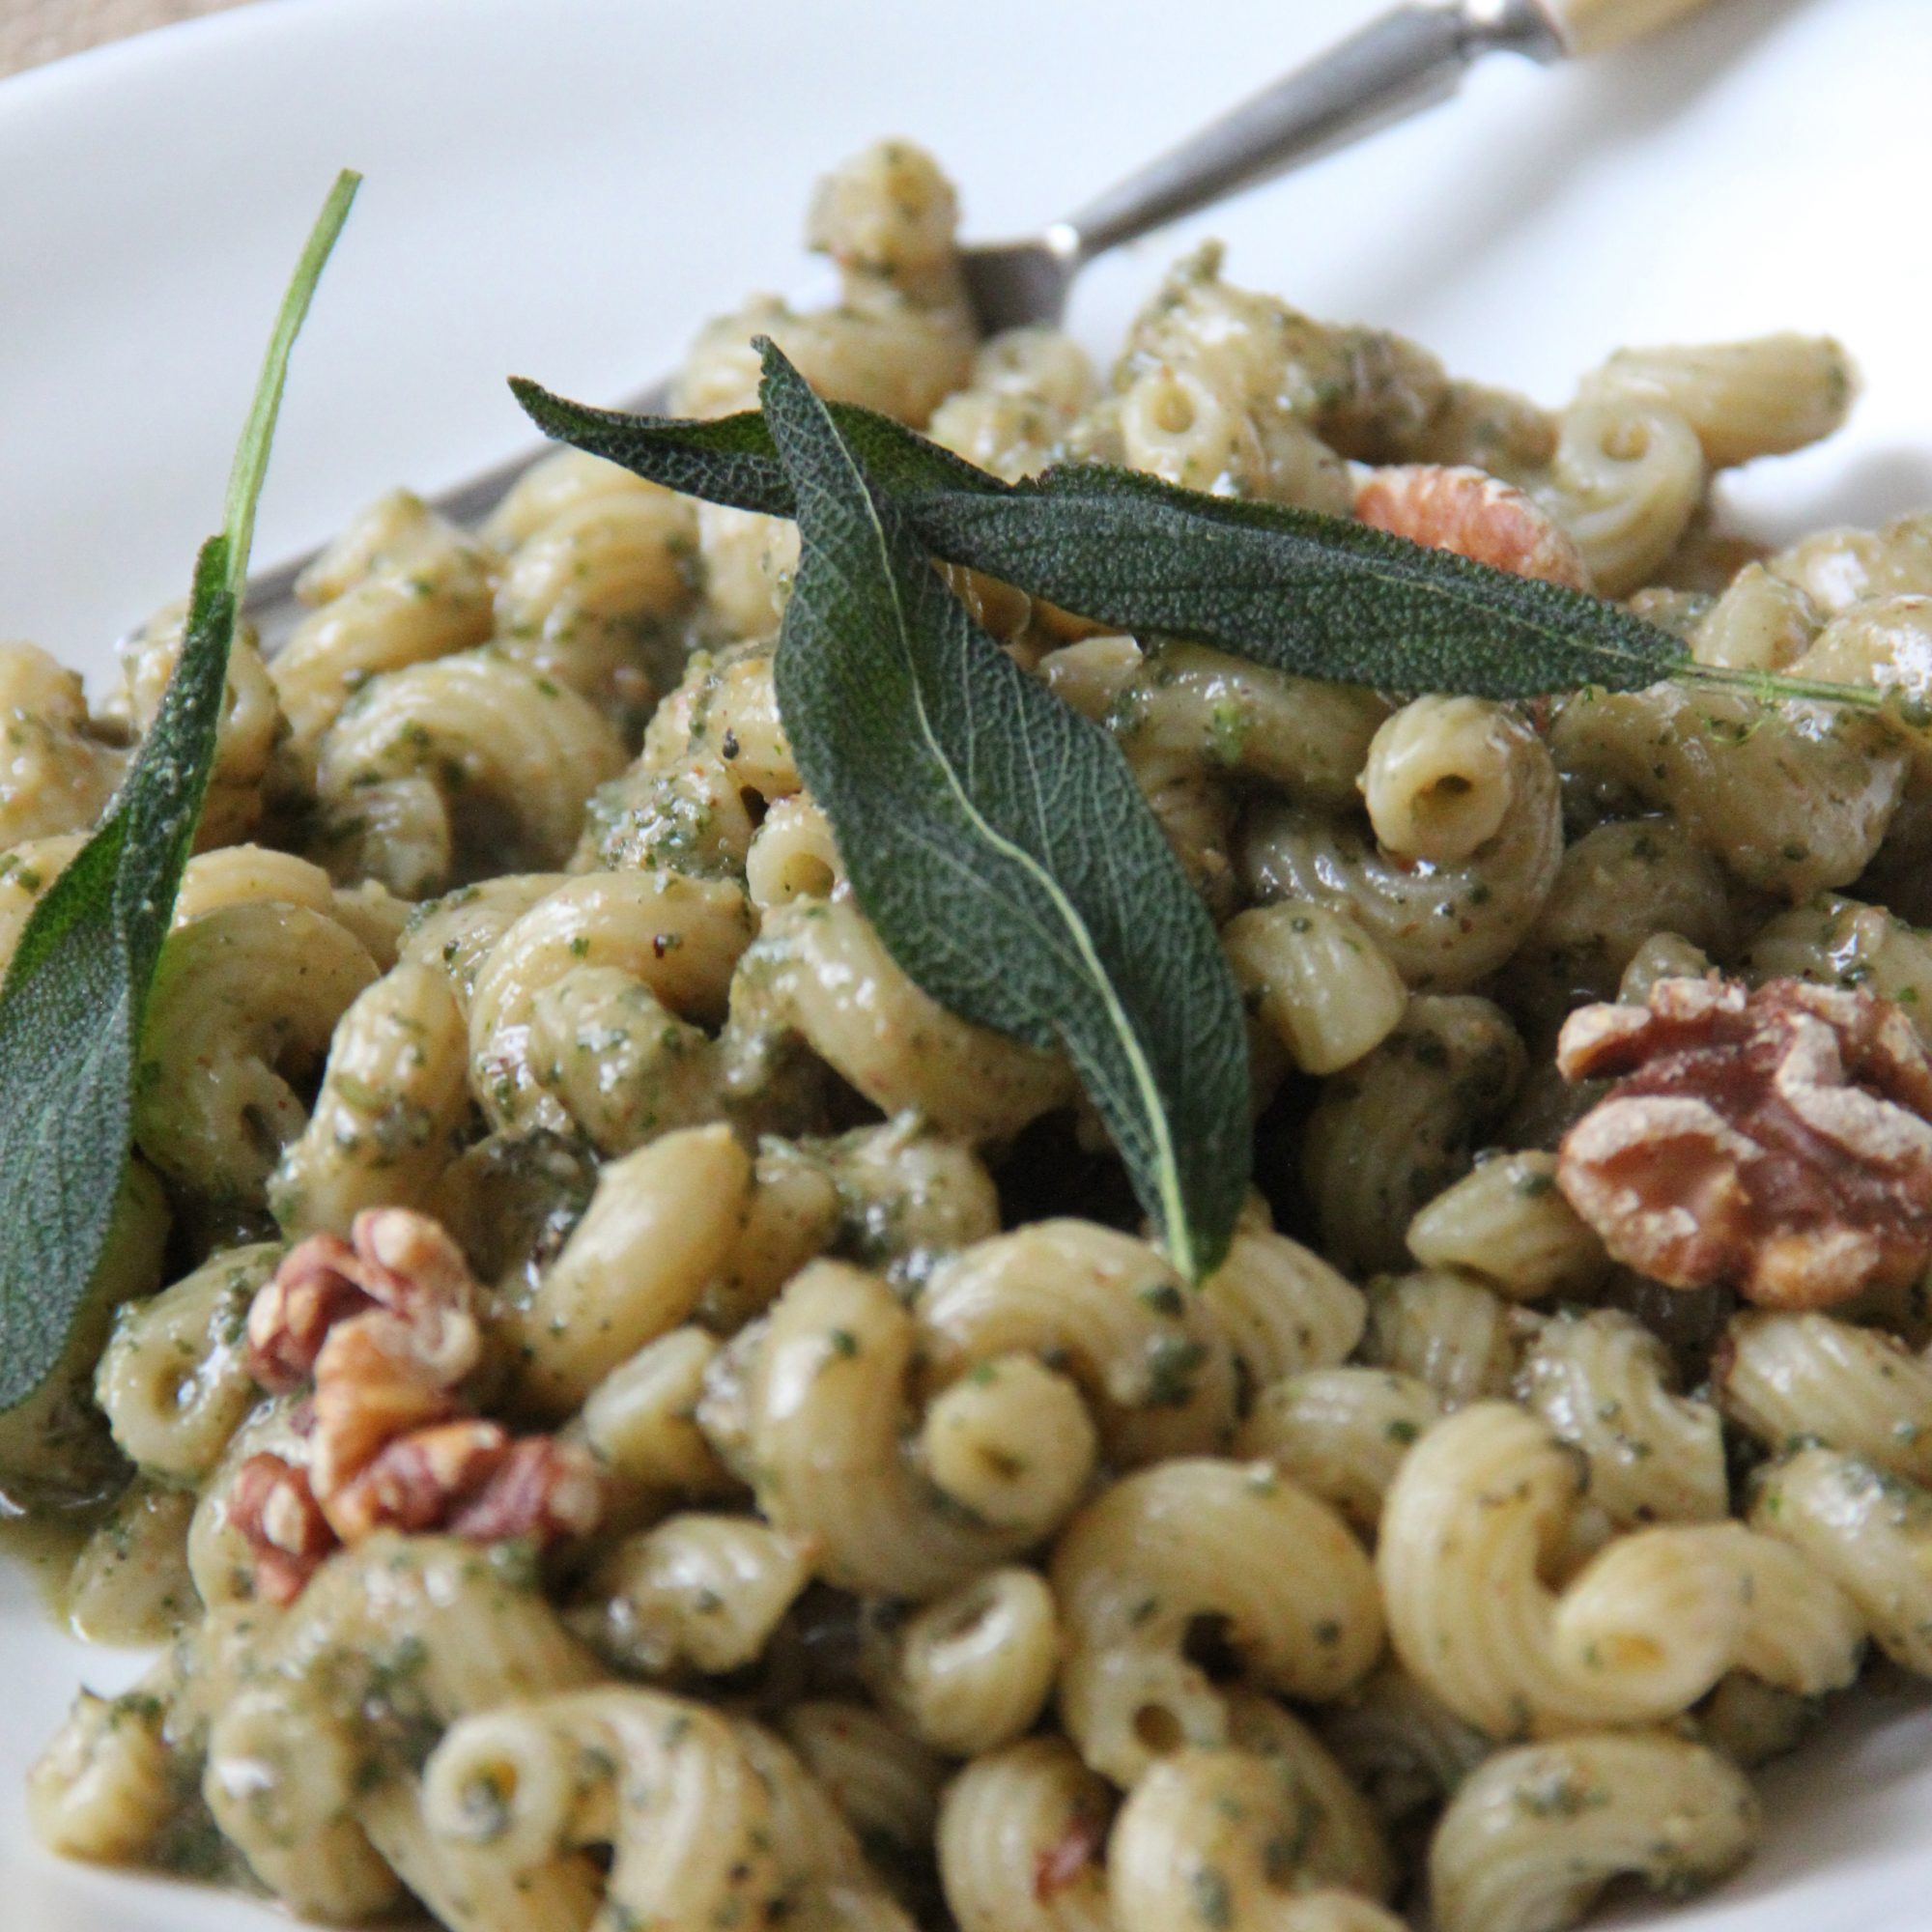 HD-201405-r-sage-walnut-pesto-pasta.jpg